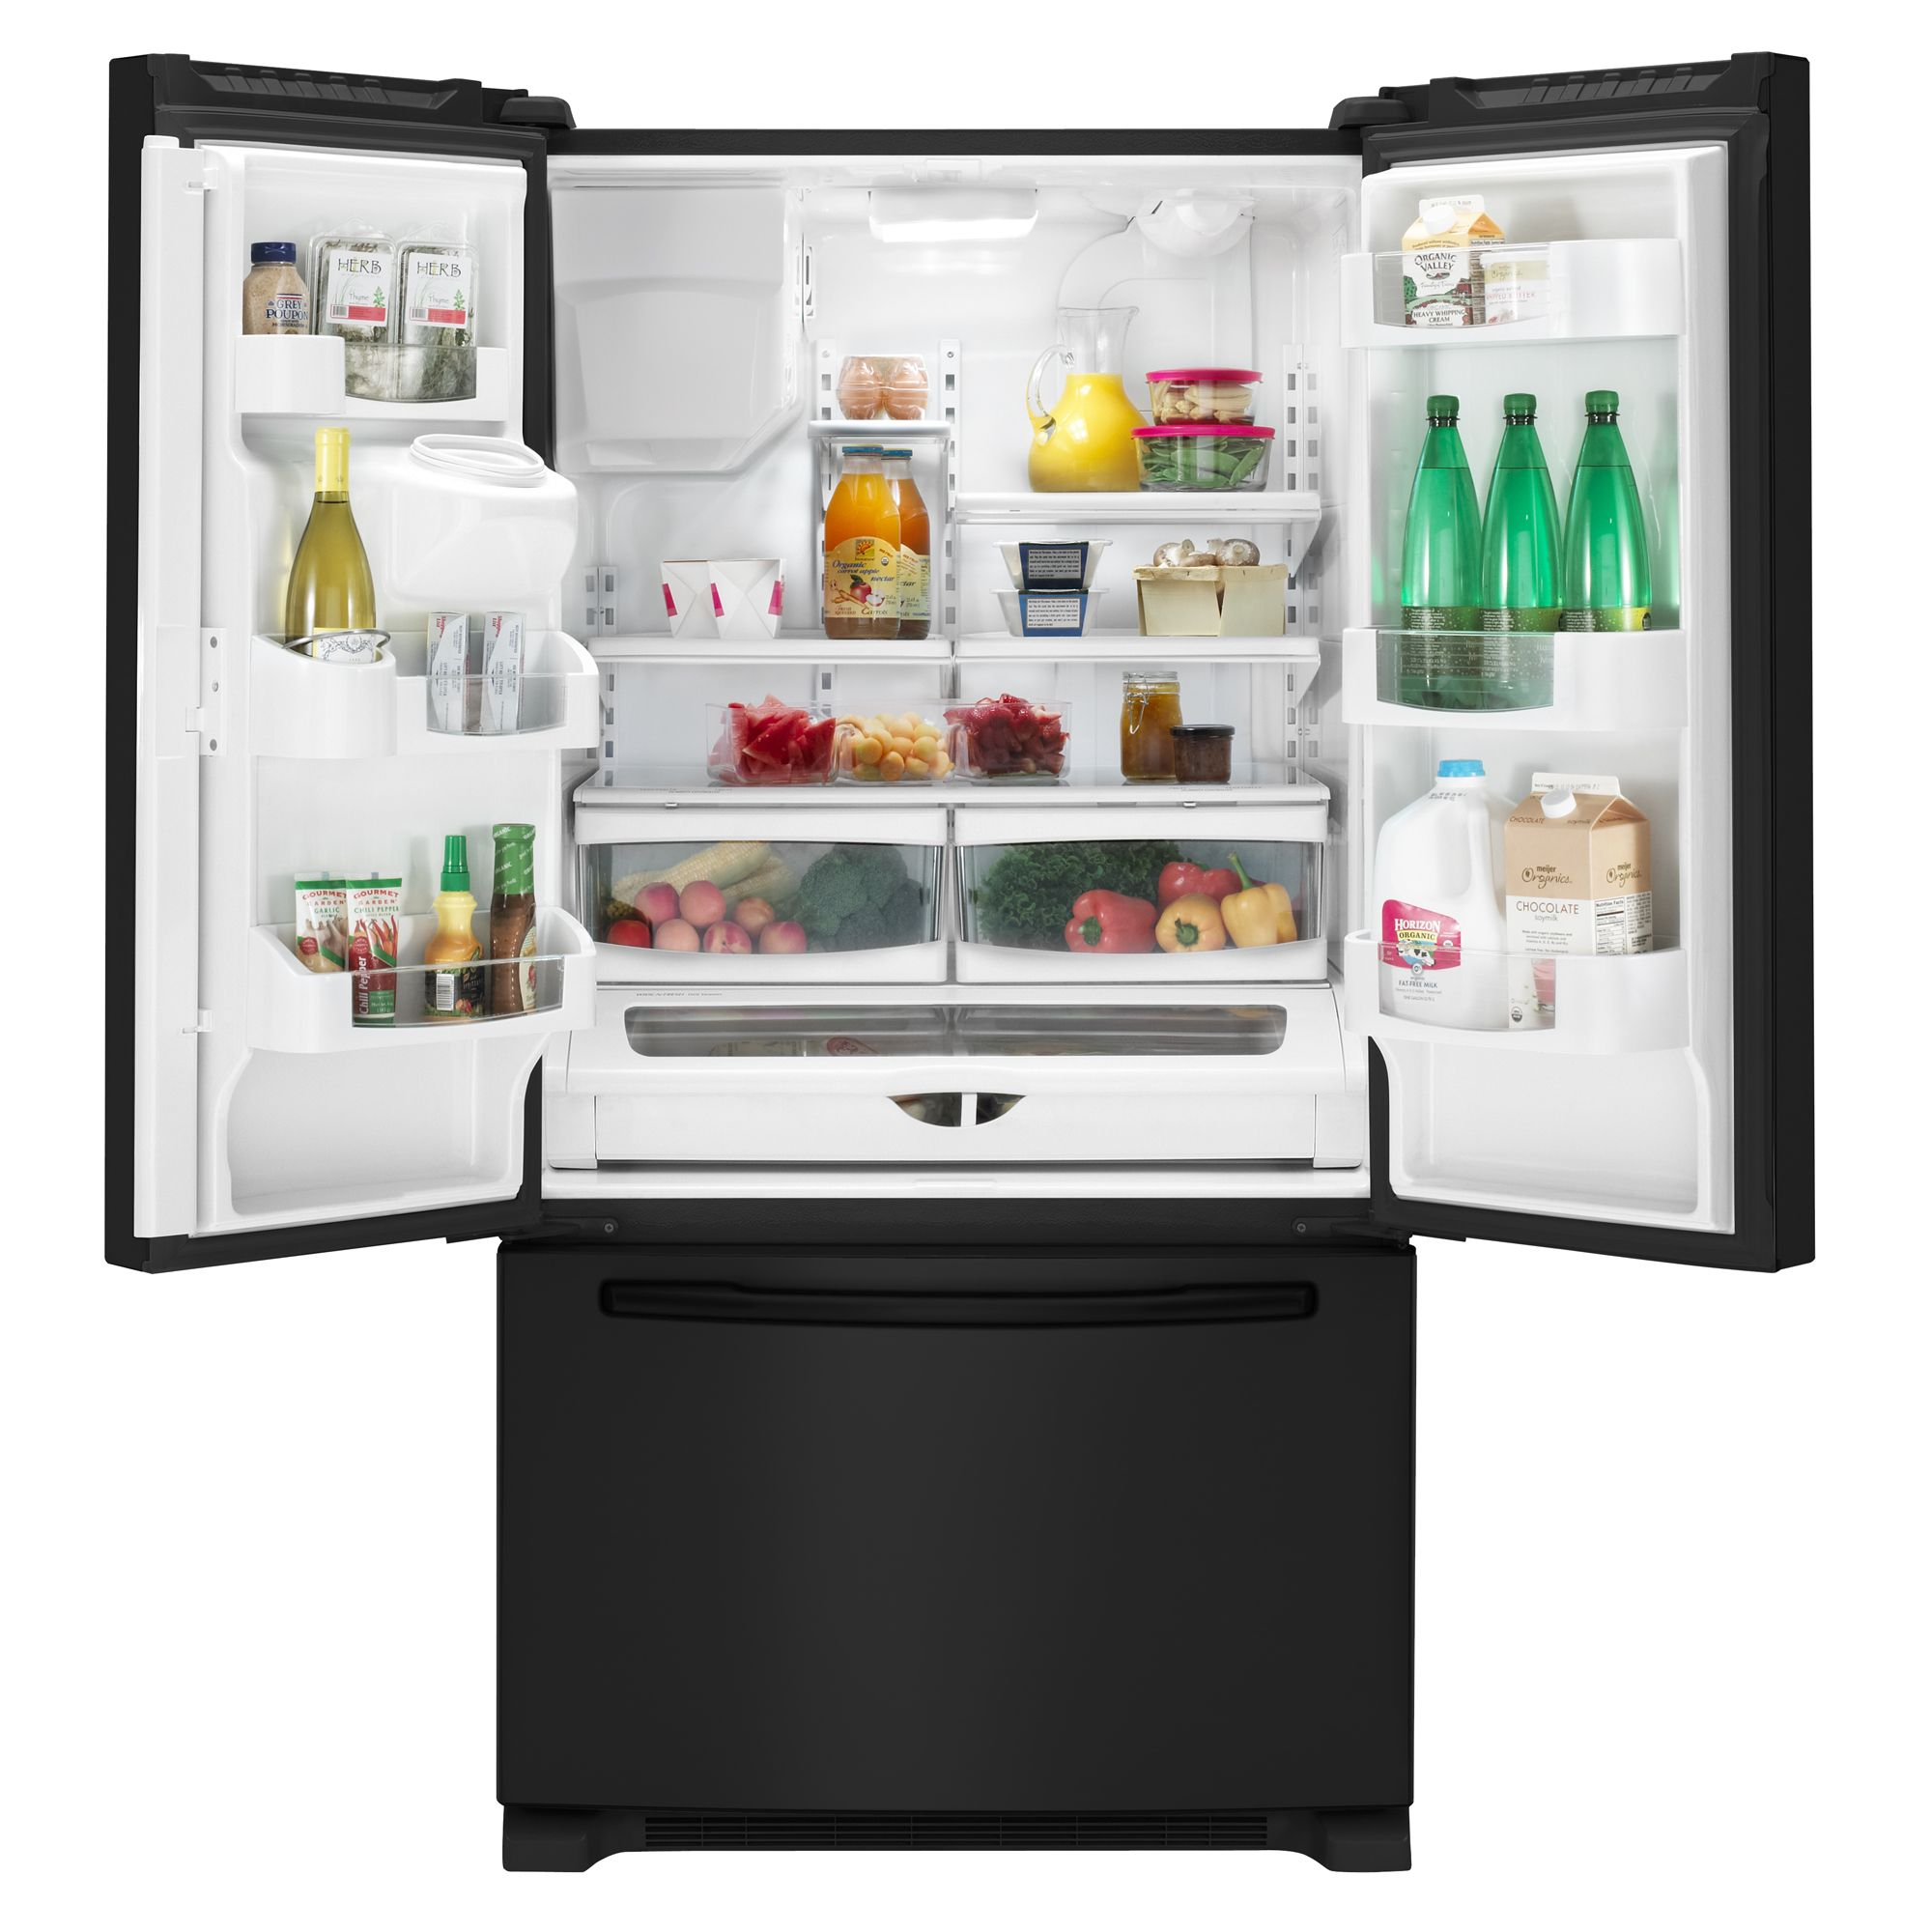 Maytag MFI2670XEB 25.5 cu. ft. French Door Bottom Freezer Refrigerator w/ Dispenser